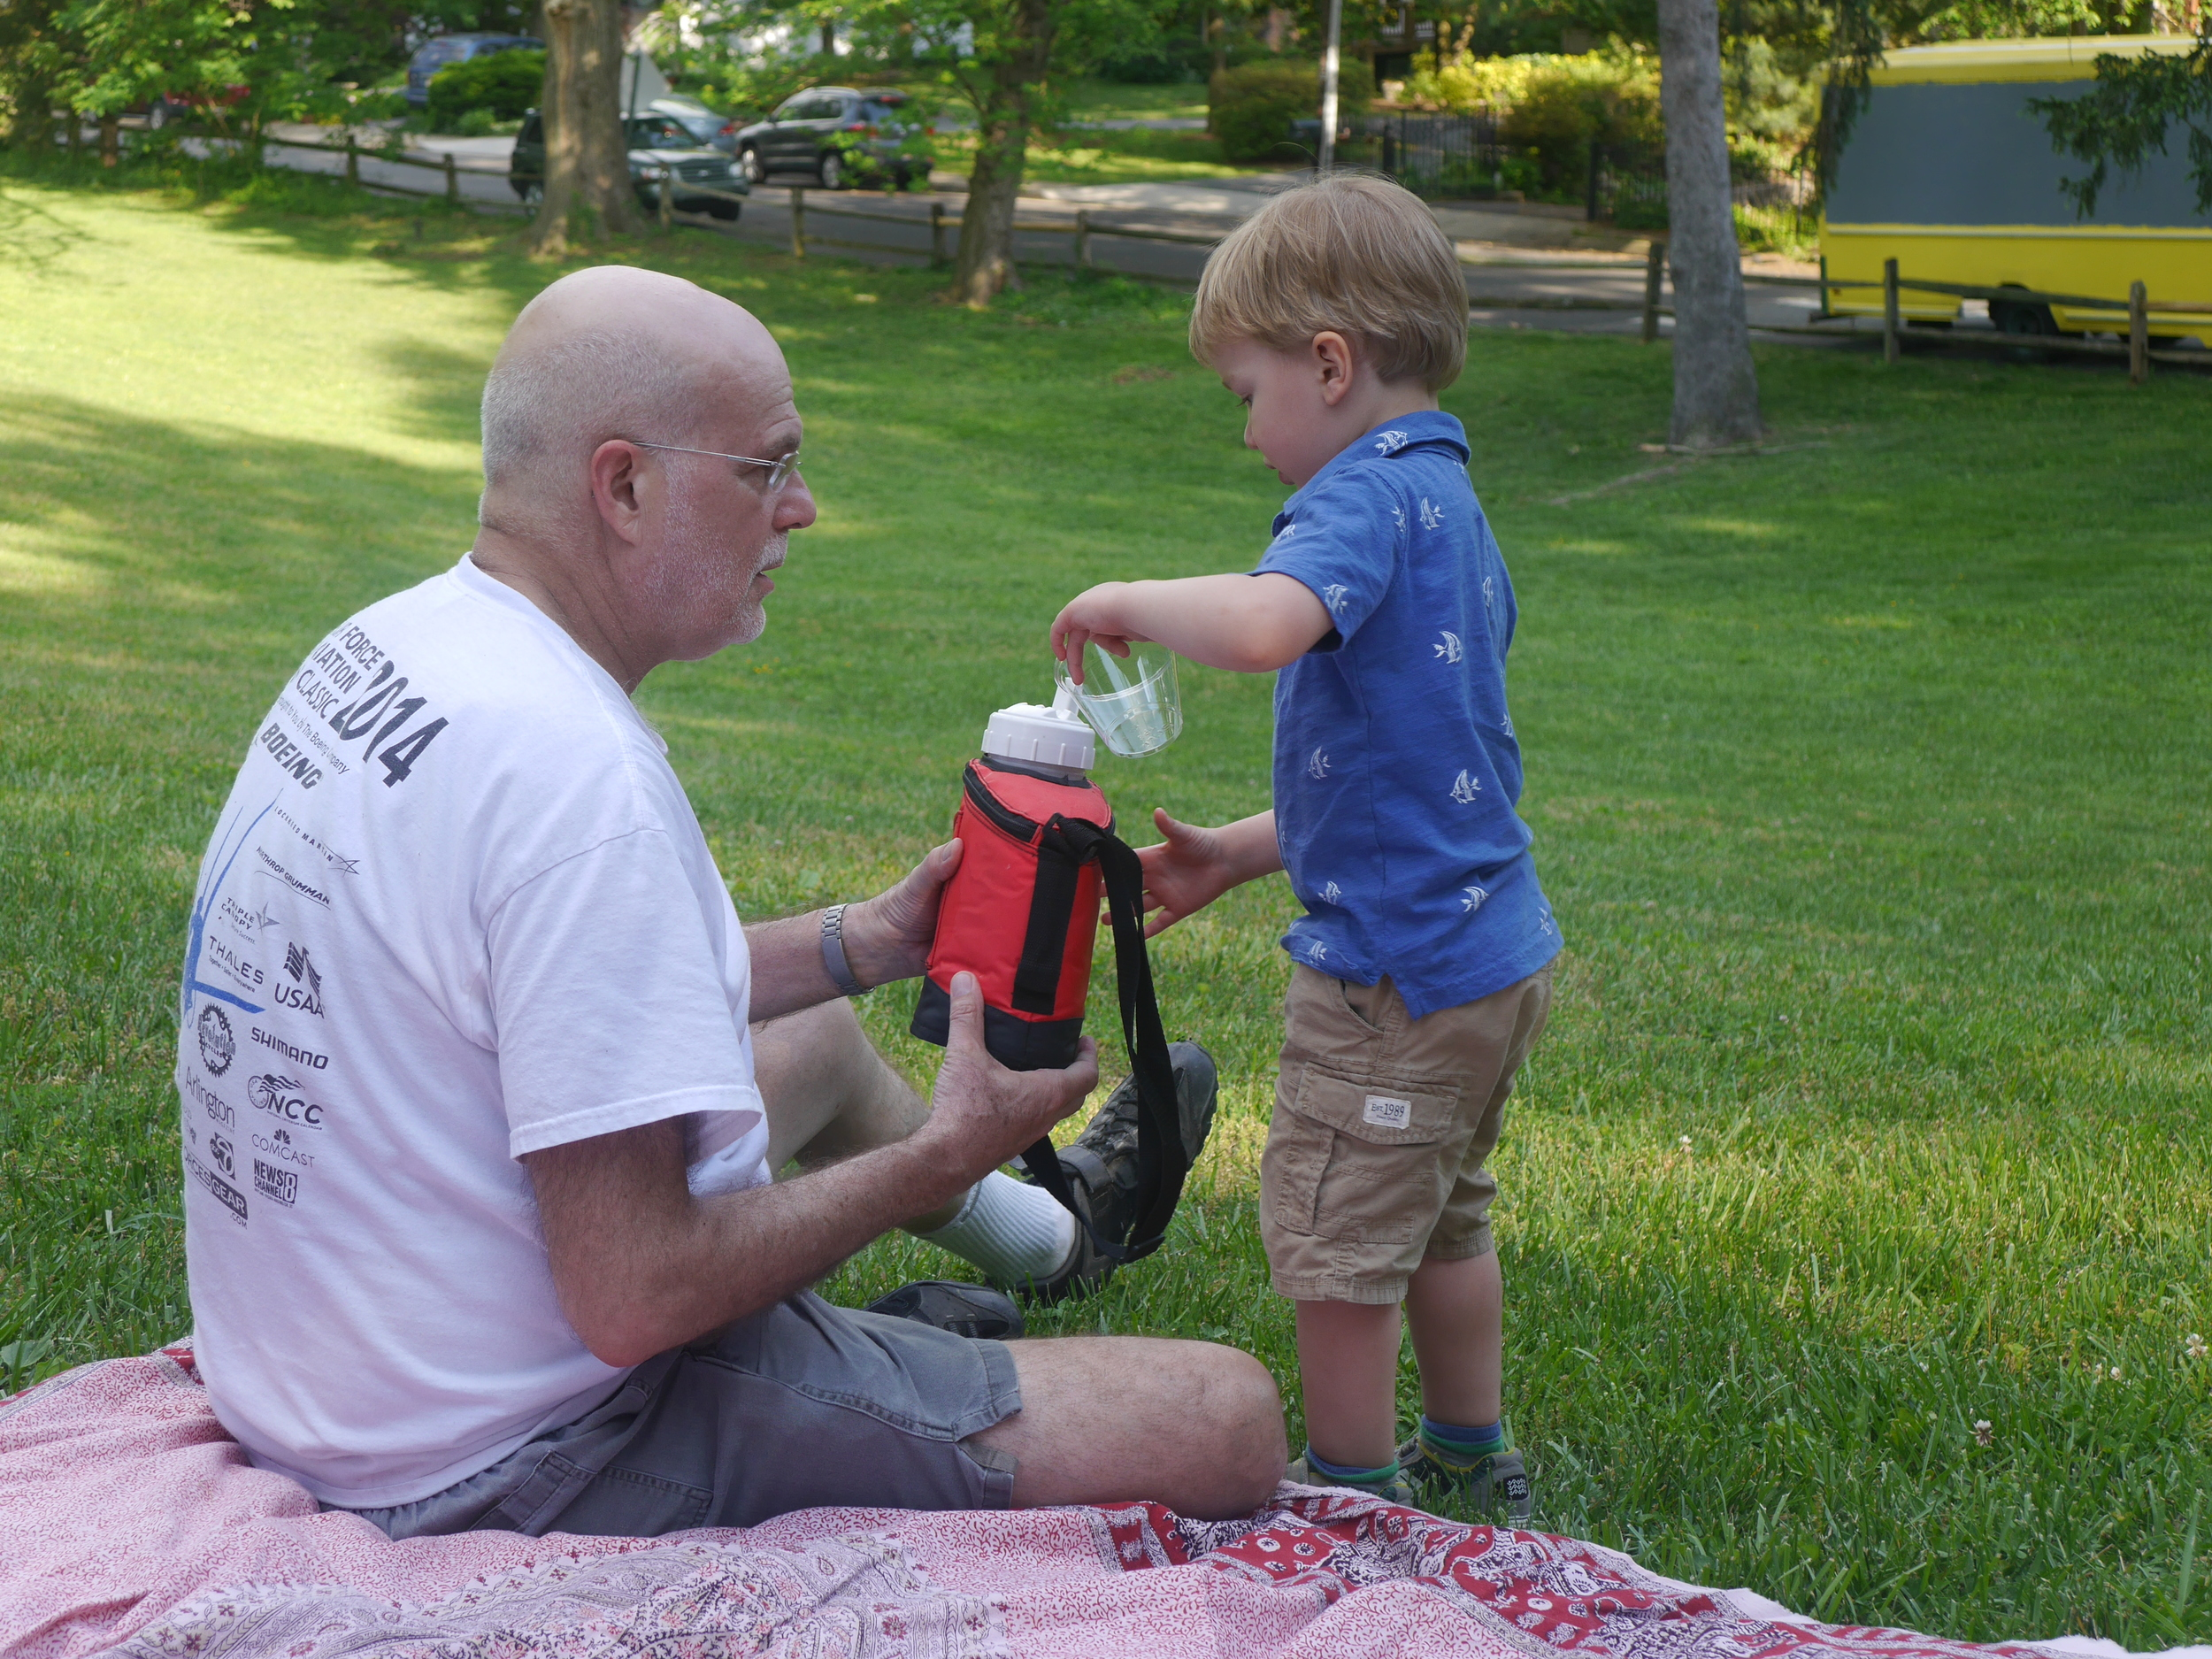 Dad helping Sebastian with the water (or maybe the other way around).